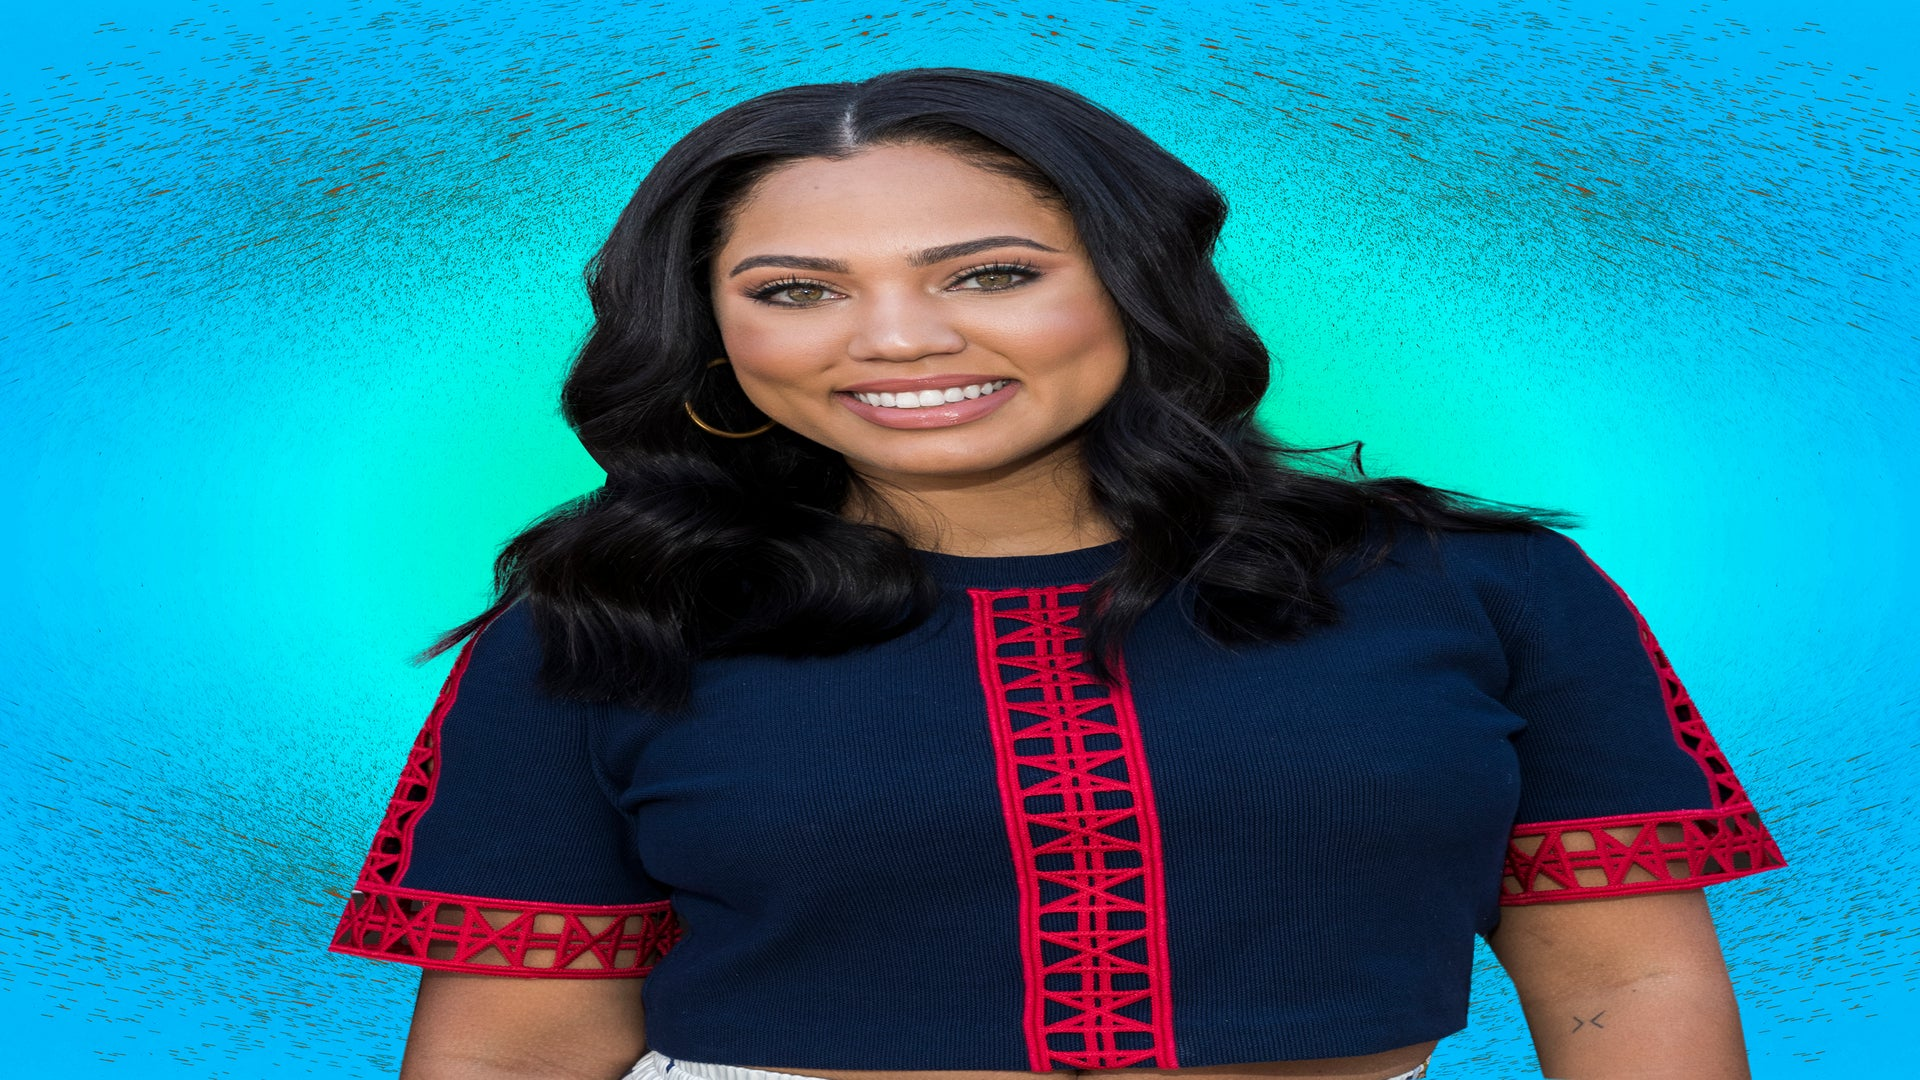 Future 15: Ayesha Curry Is Whipping Up a Recipe For A Winning Food Empire